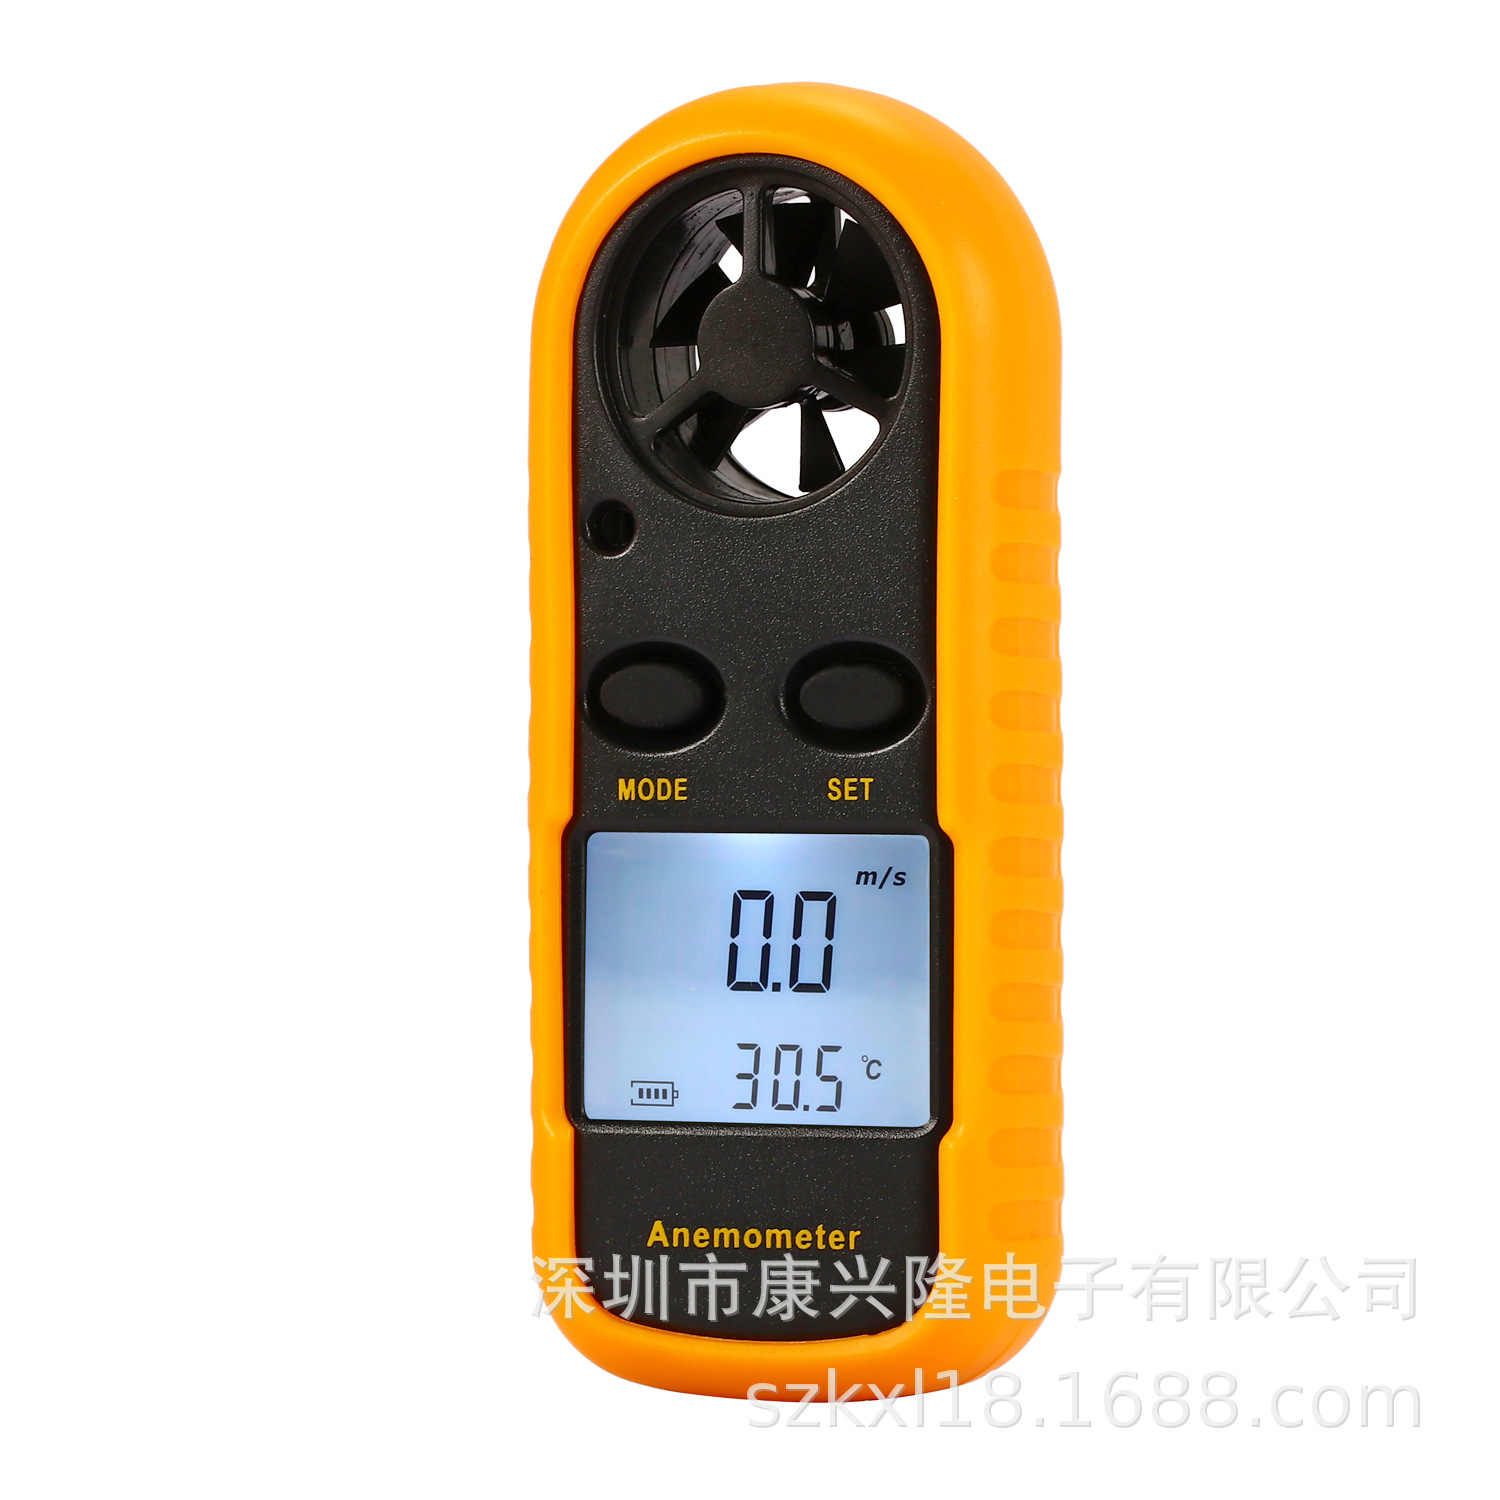 GM816 mini digitale anemometer thermometer windsnelheid luchtsnelheid temperatuur meten anemometro met backlight karton